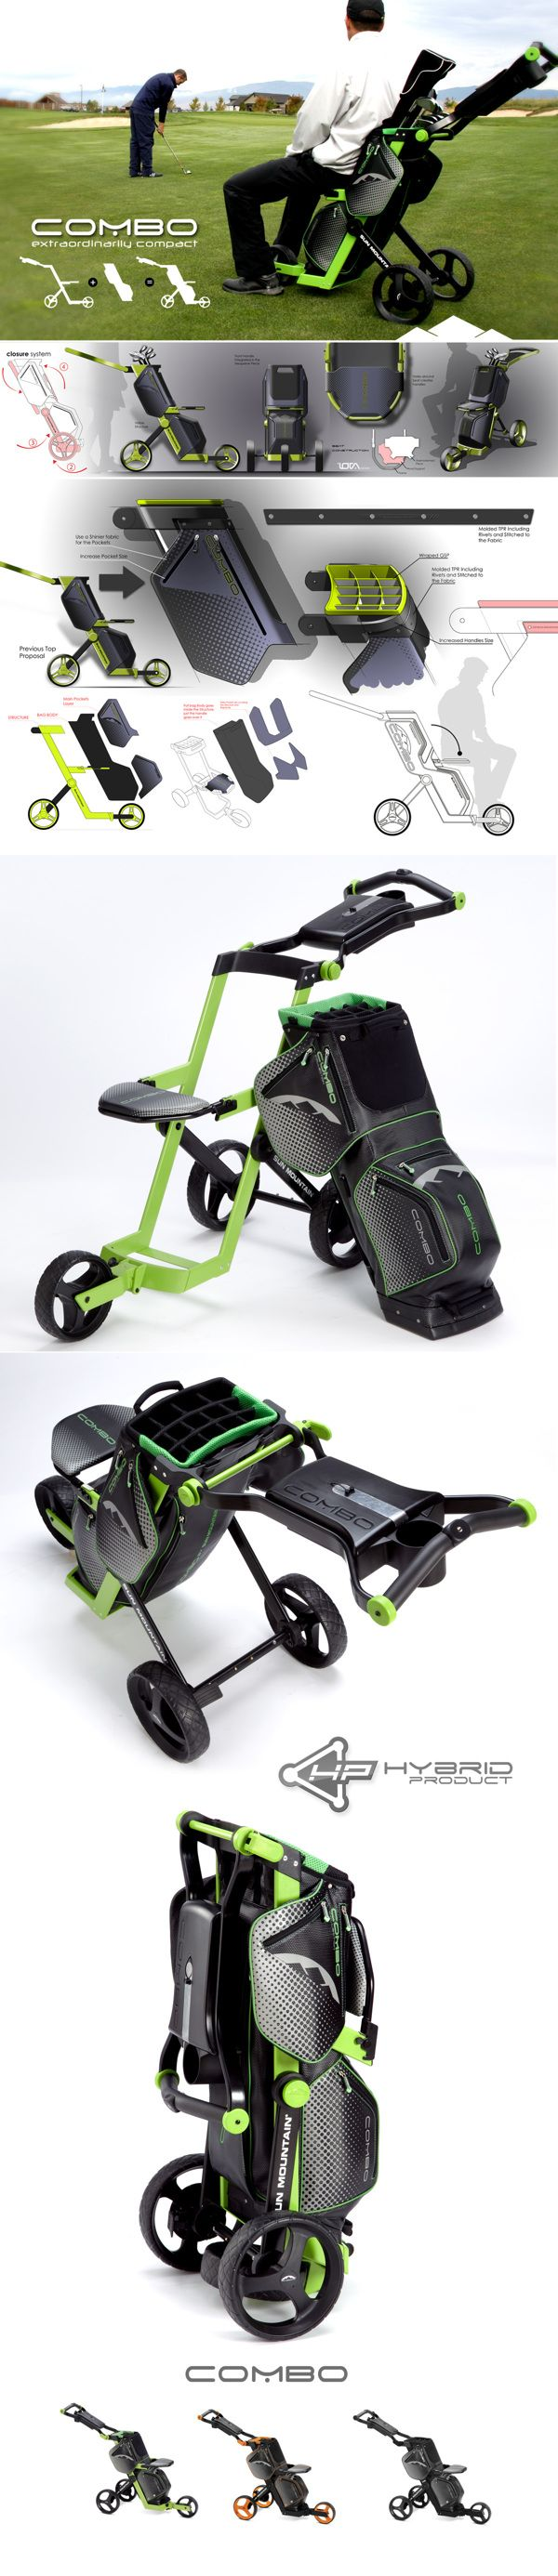 SUN MOUNTAIN Combo Cart on Behance Designed by IOTA Design